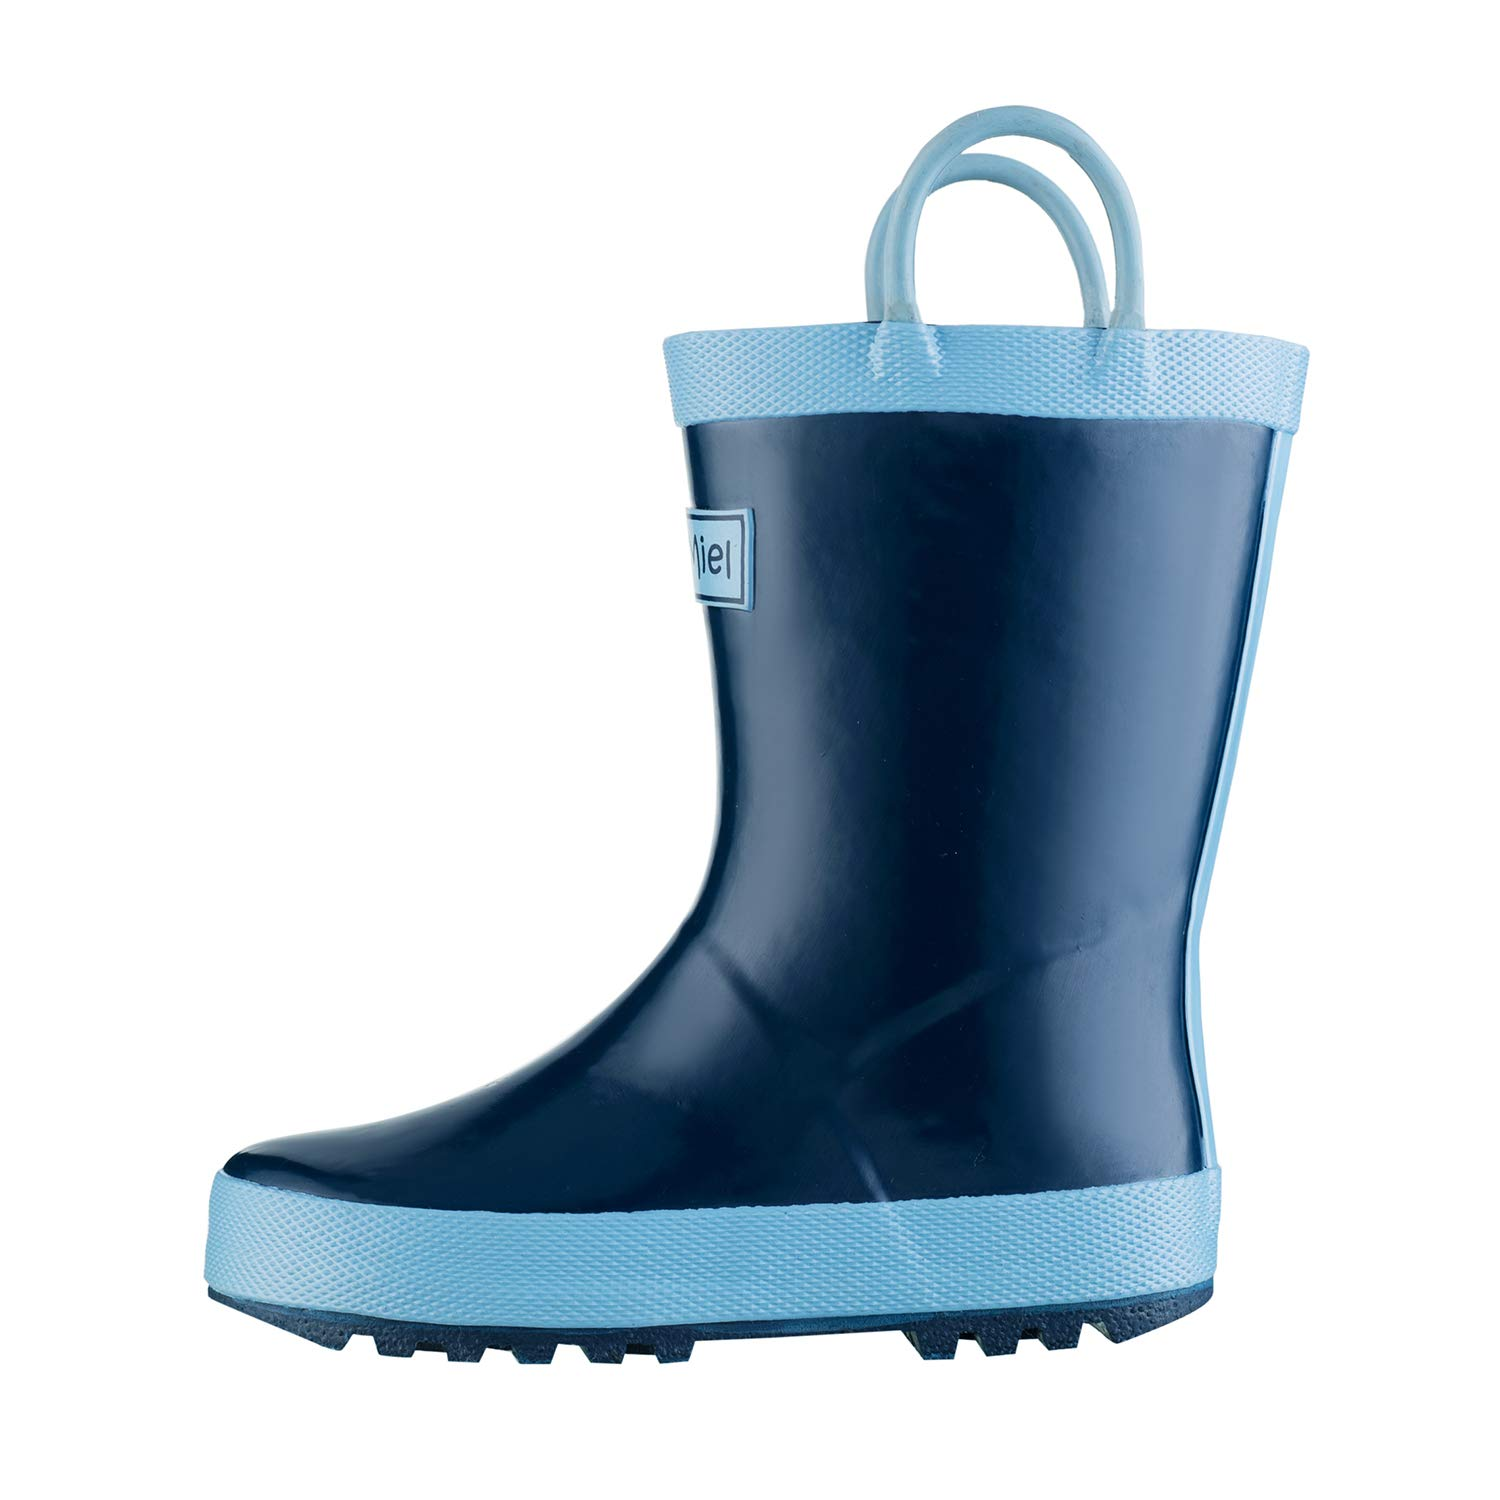 CasaMiel Kid&Toddler Rain Boots for Boys and Girls, Children Handcrafted Rubber Boots, Noble Blue